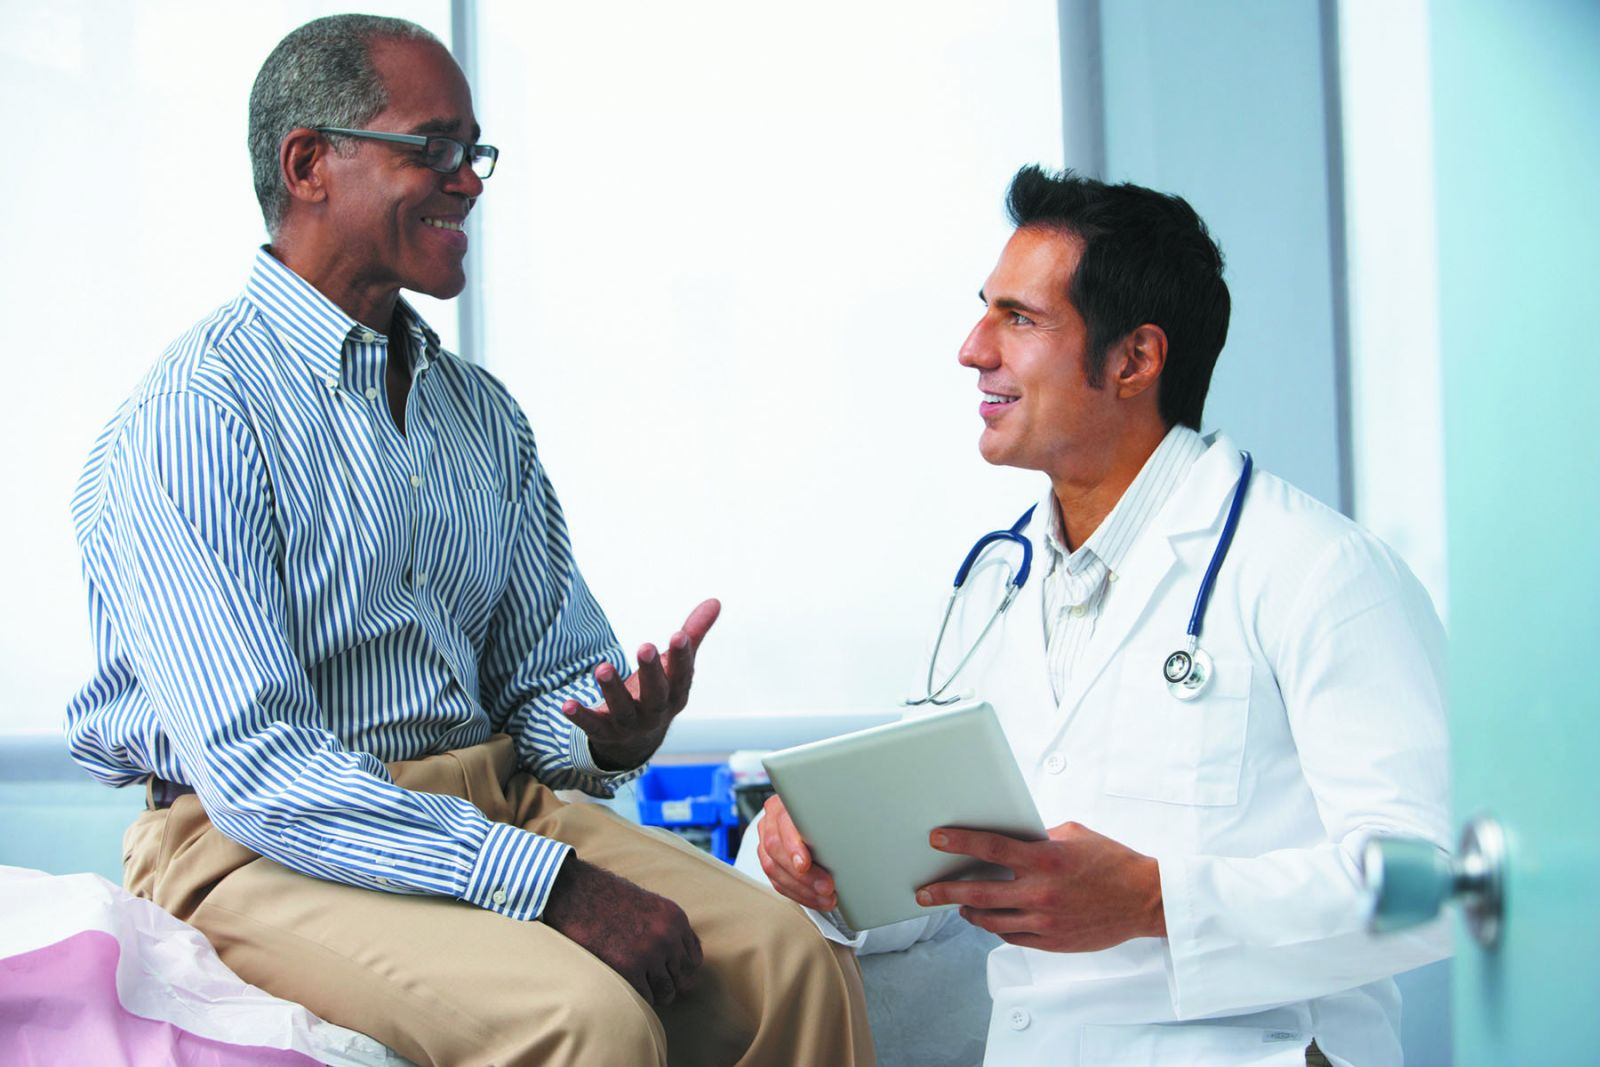 African American men respond better to treatments for advanced prostate cancer in clinical trials